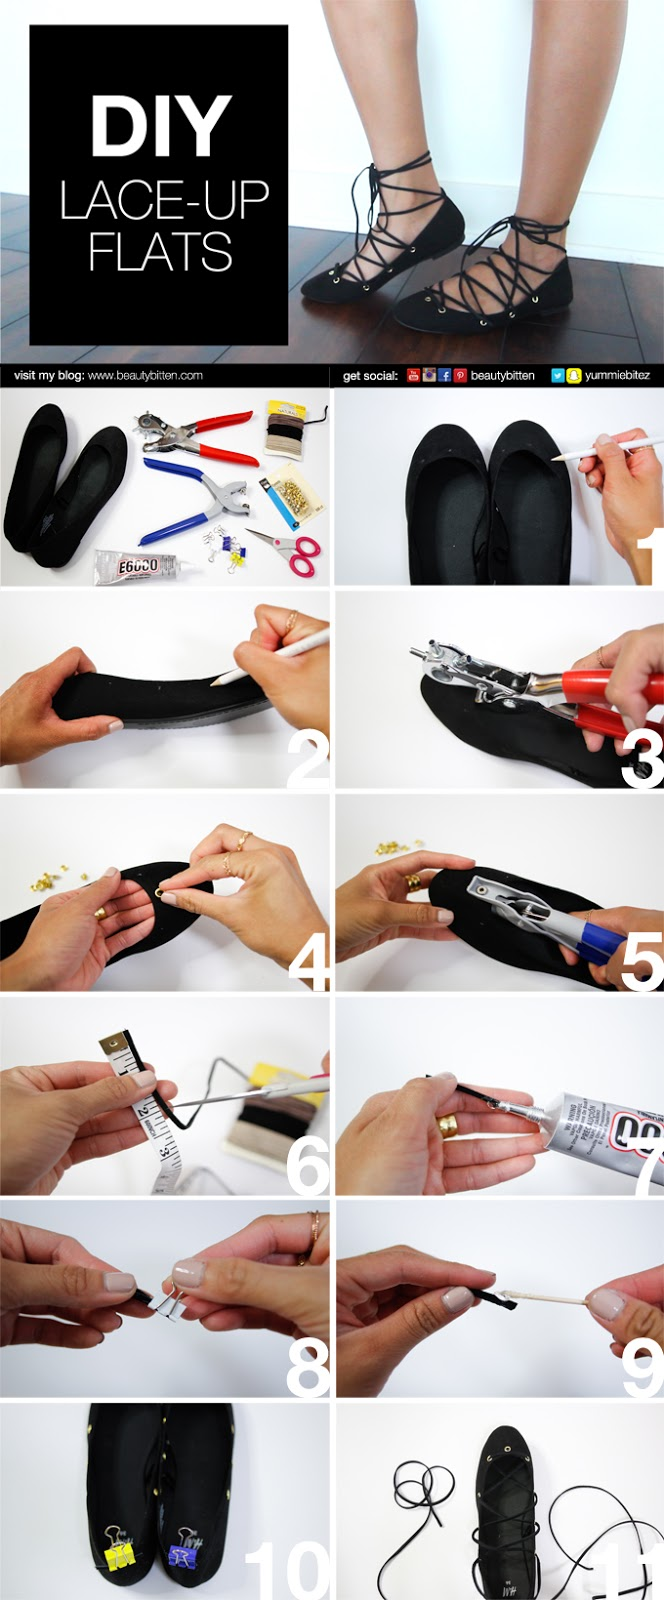 DIY Laced-Up Flats Instructions